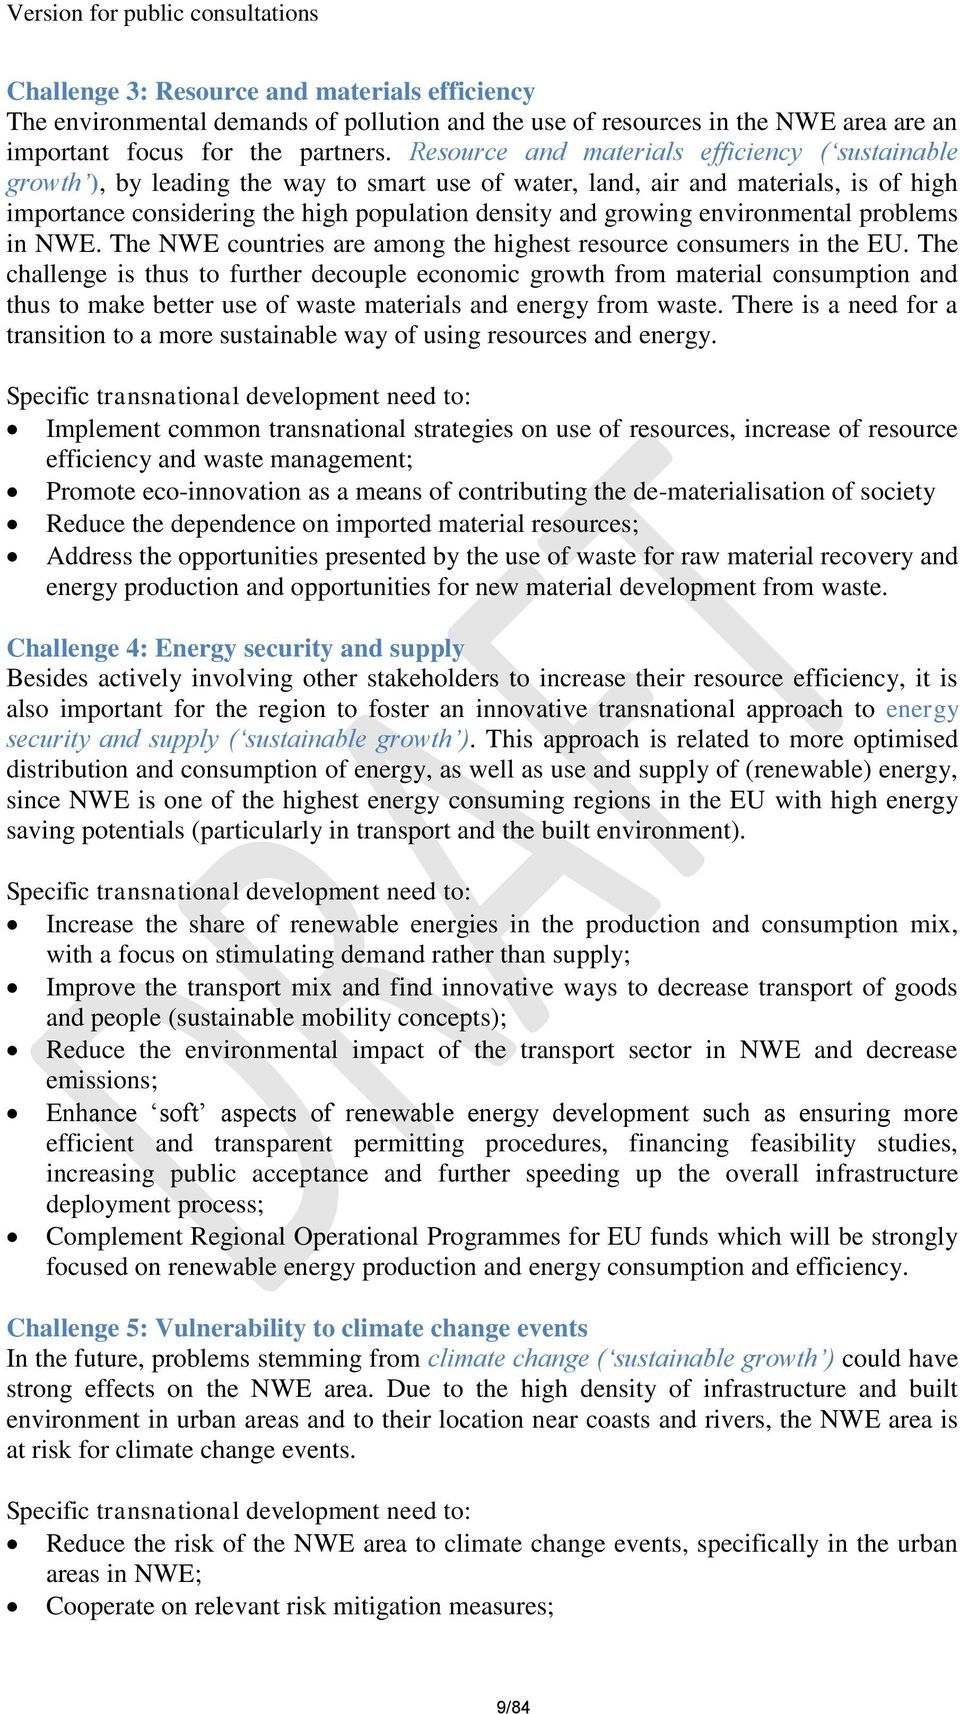 environmental problems in NWE. The NWE countries are among the highest resource consumers in the EU.